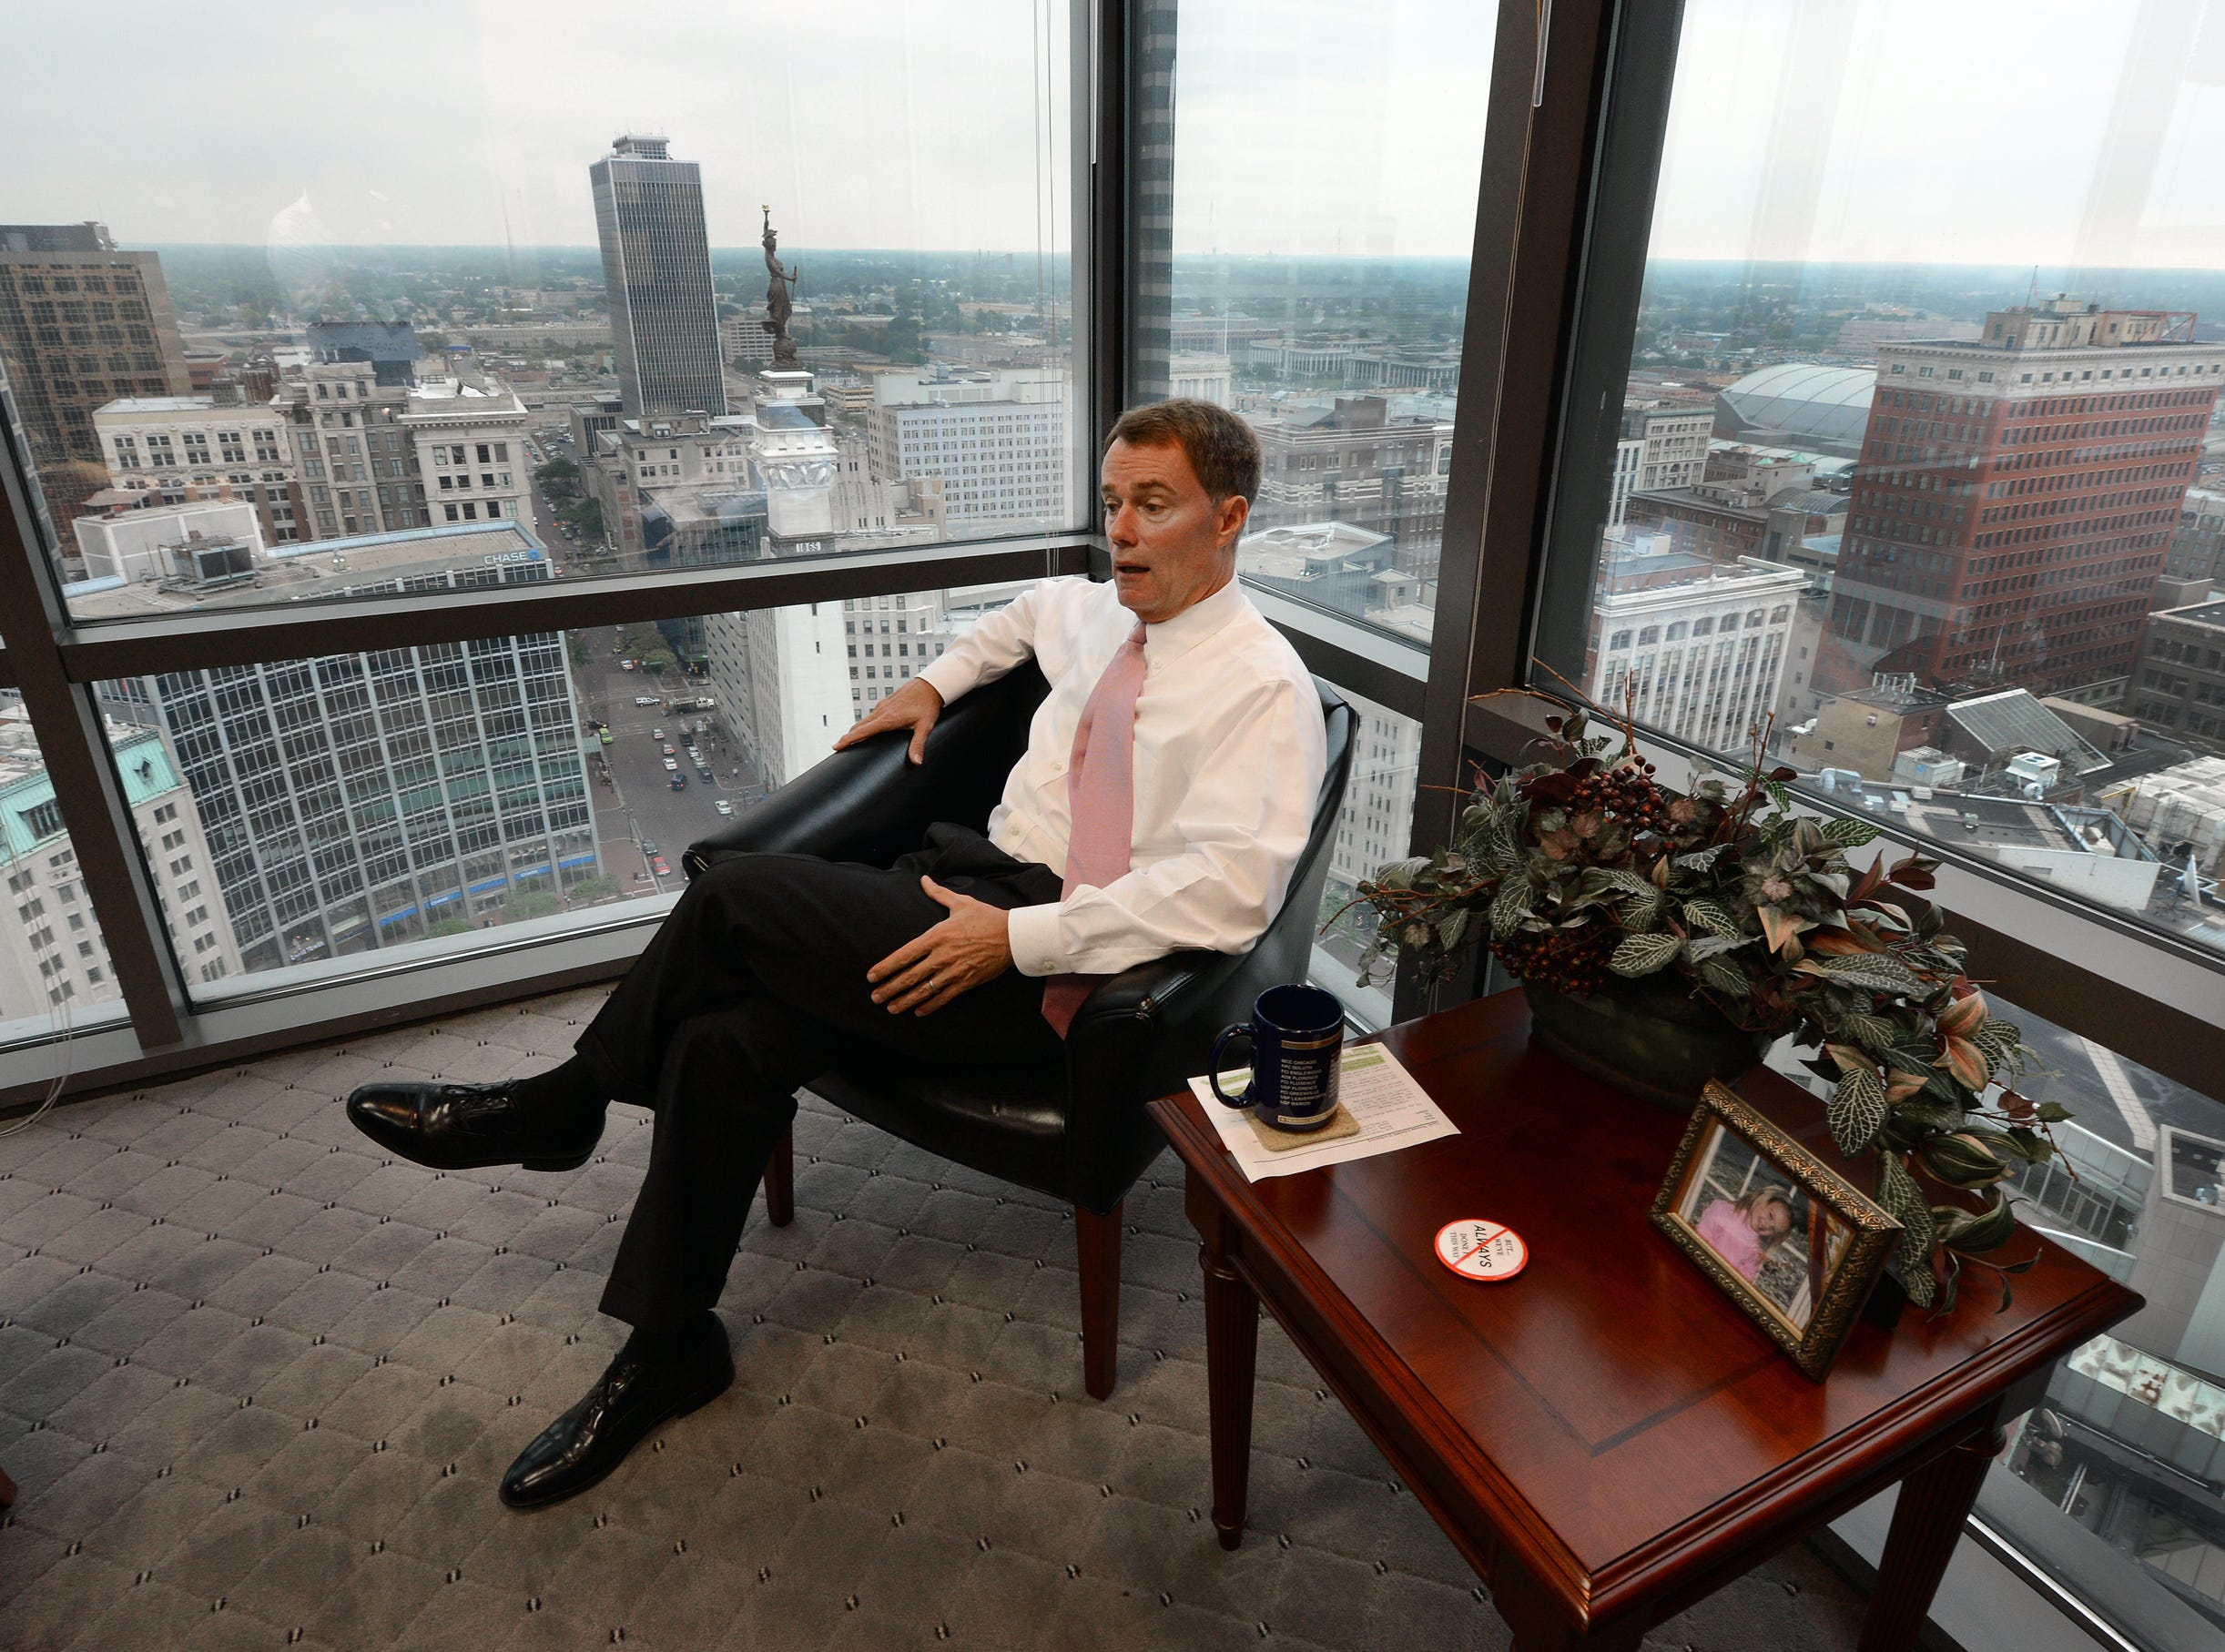 Joe Hogsett, United States Attorney for the Southern District of Indiana,  Thursday July 19, 2012, morning in his office overlooking Monument Circle.